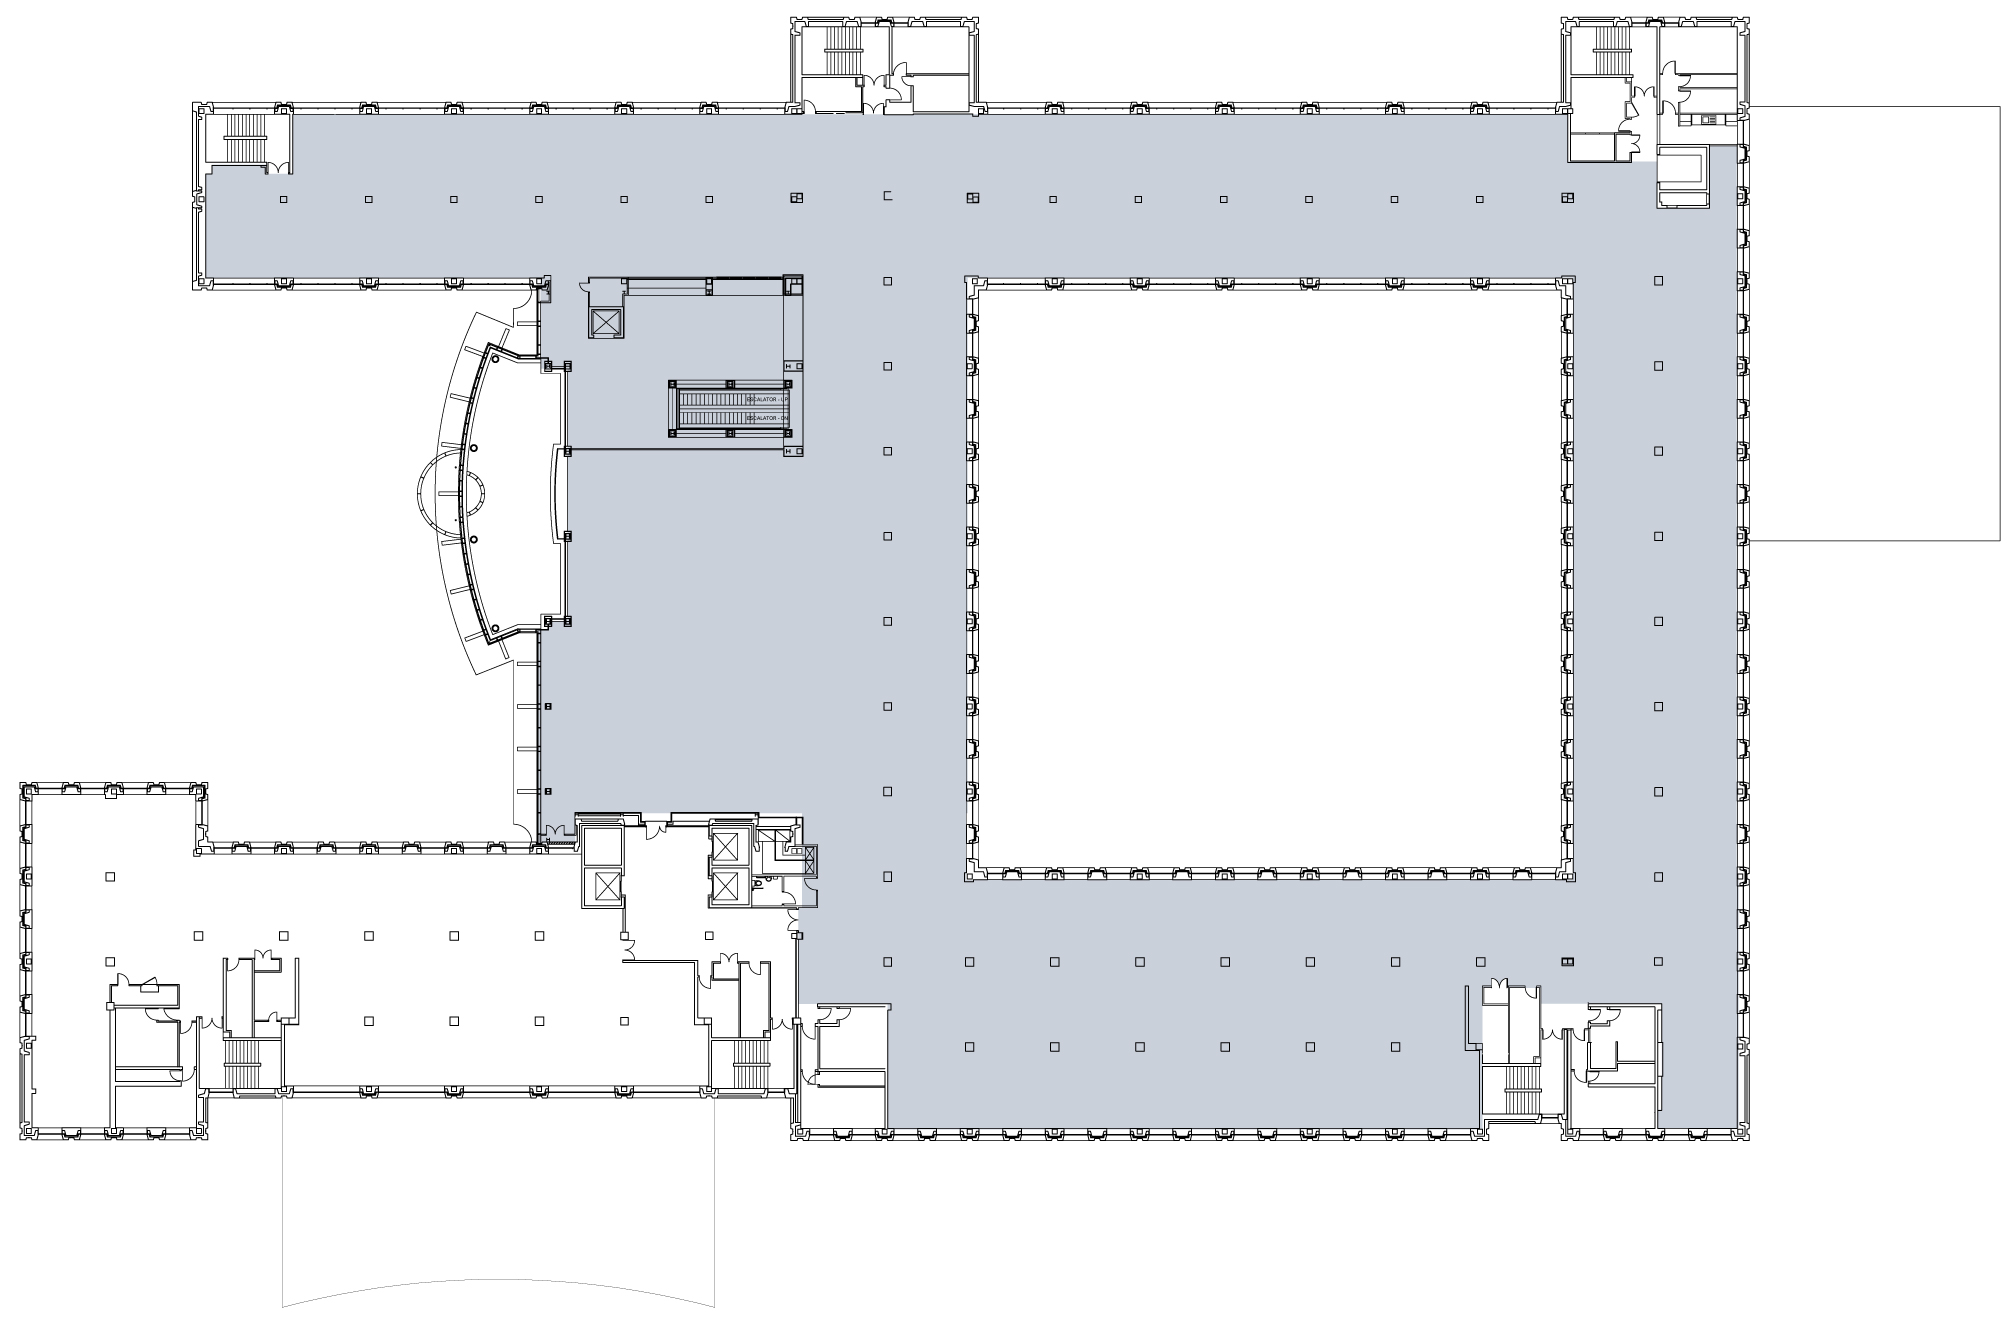 First floor - 39,220 sq ft (365 people)